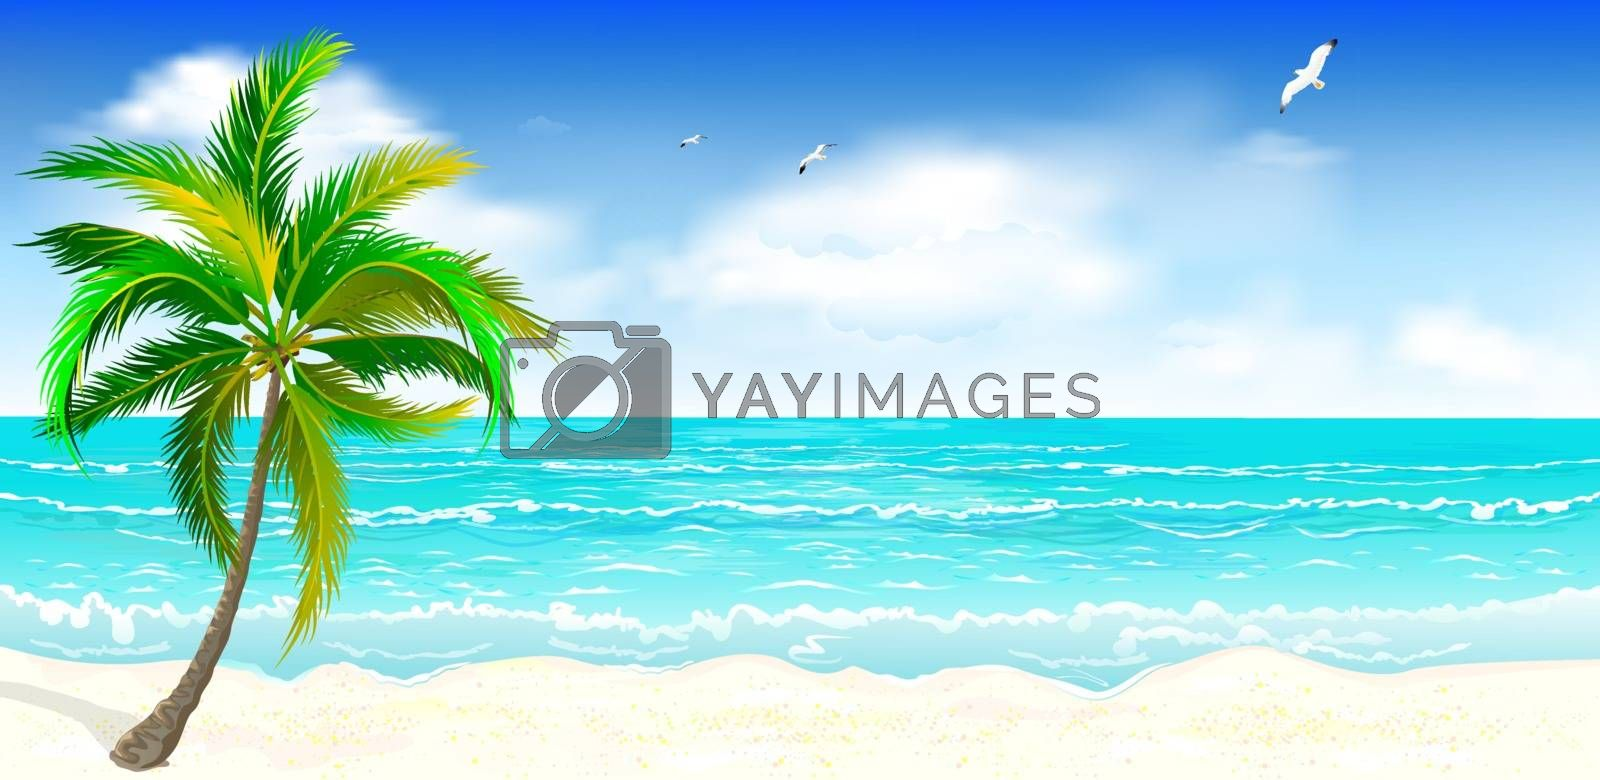 Landscape of the tropical shore. Landscape of the sea shore with palm tree. Sea shore with palm tree, blue sky and white clouds. Palm tree against the background of the sea, sky and clouds.